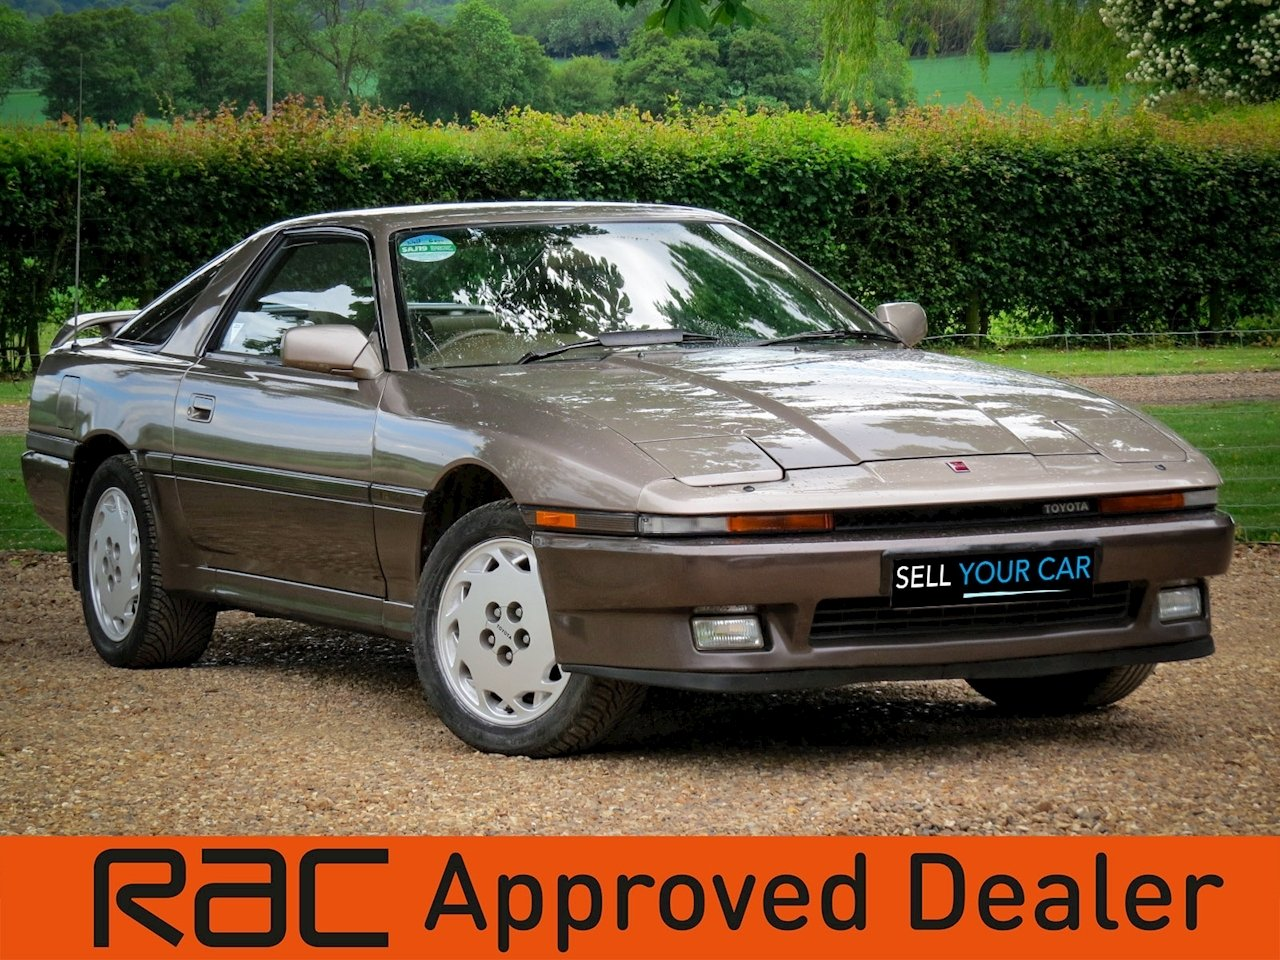 1986 Supra Coupe 3.0 Automatic Petrol For Sale (picture 1 of 6)